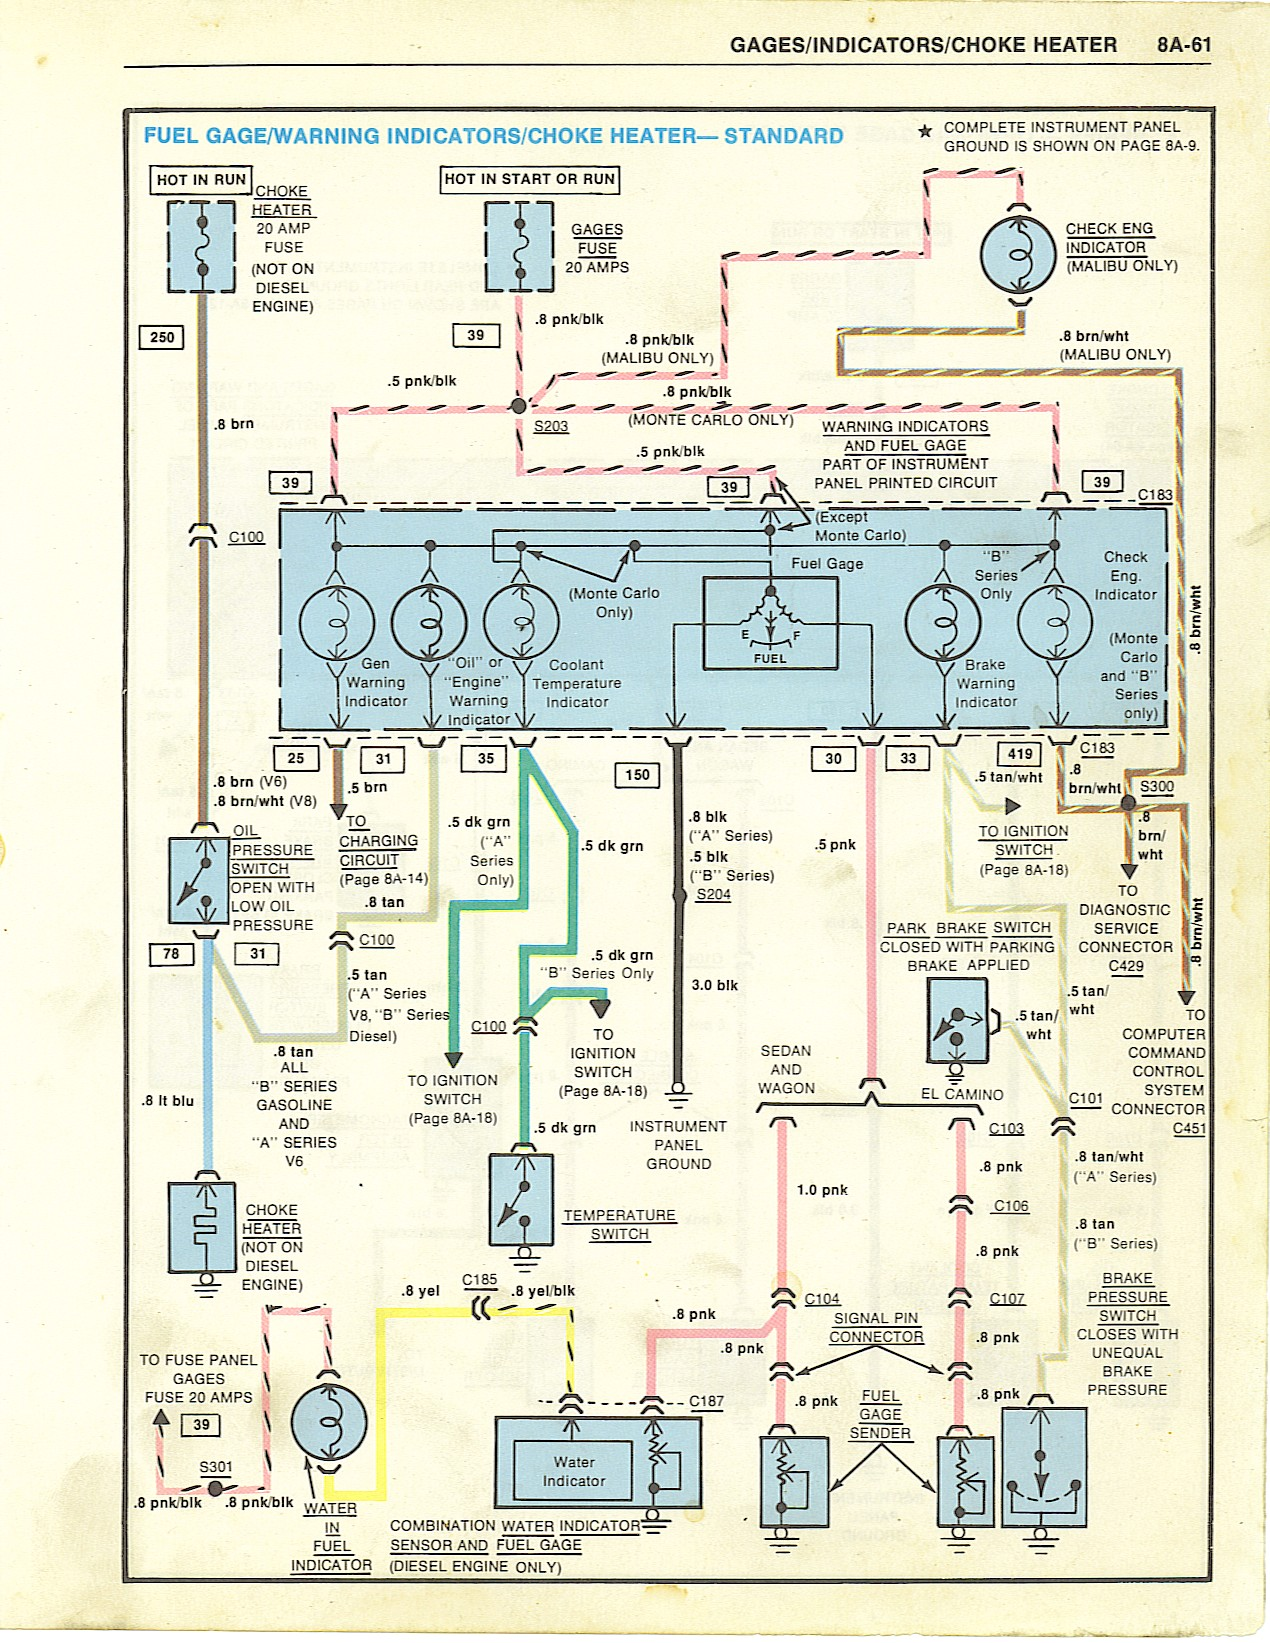 ez power converter wiring diagram battery wiring diagram